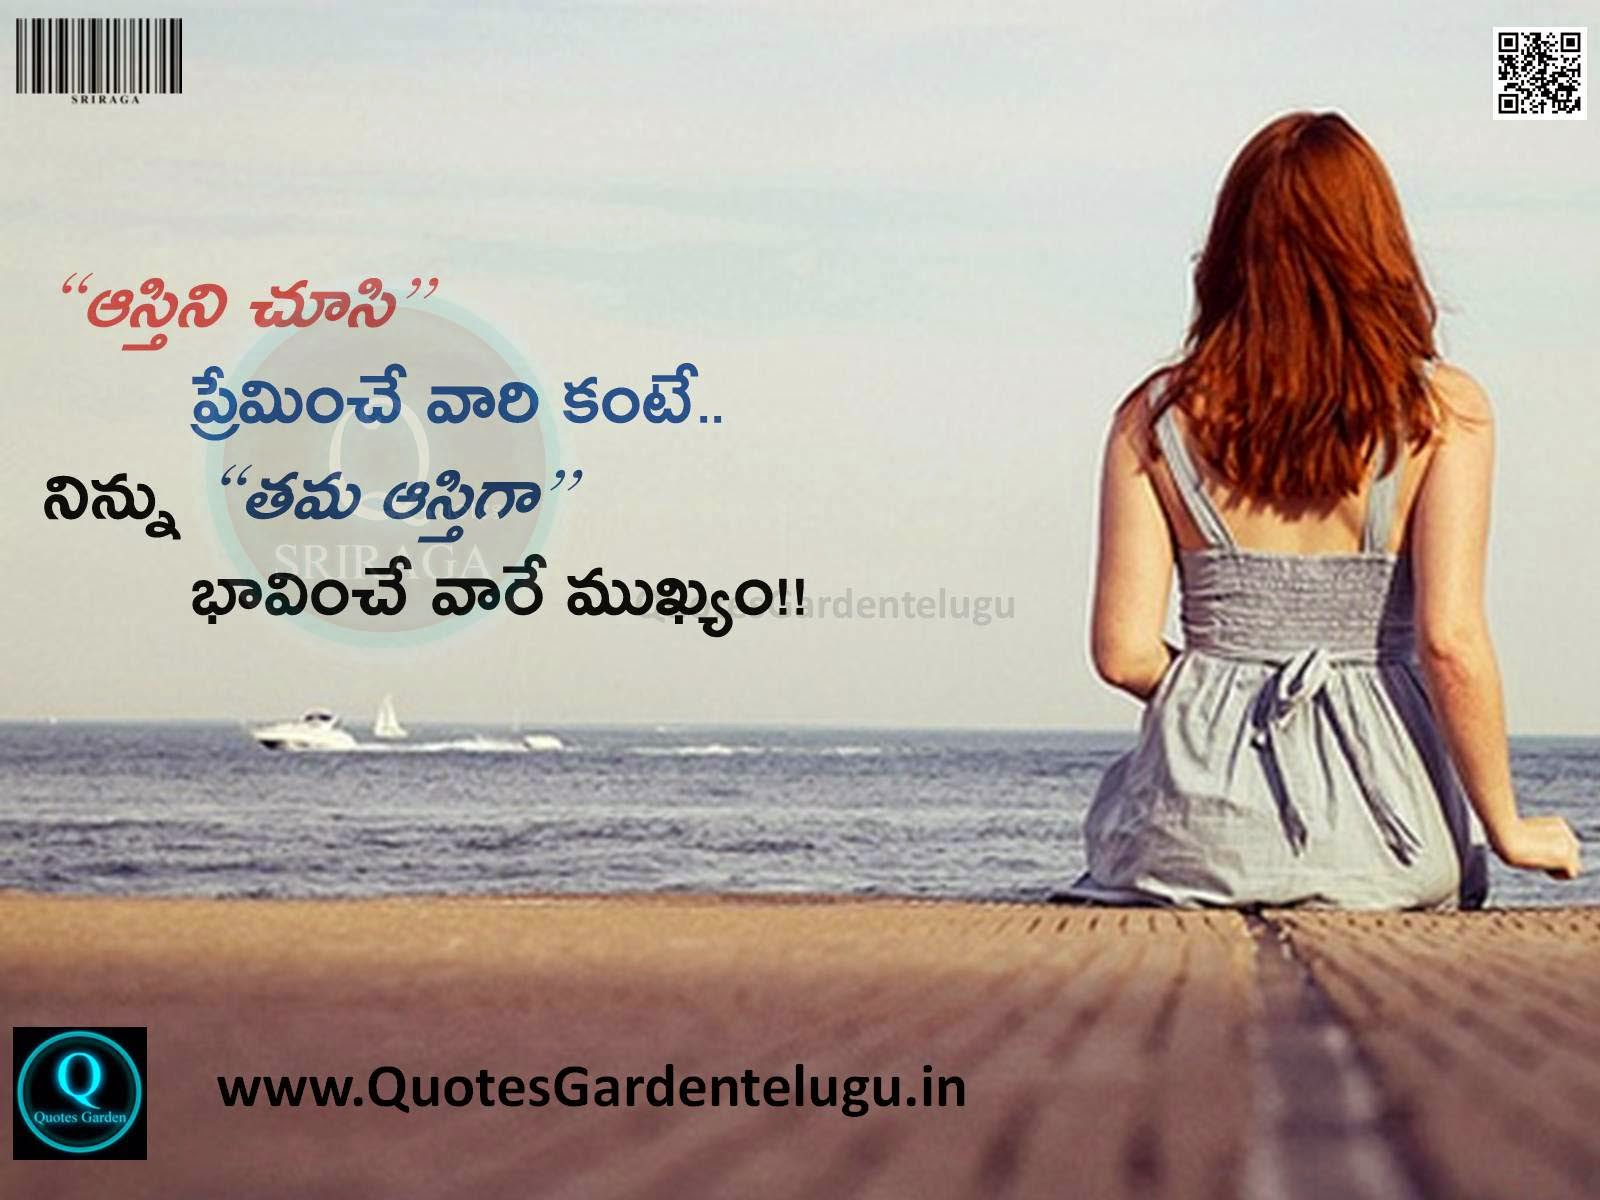 Quotes About Water Ravikumar Ravikumar9063870 On Pinterest